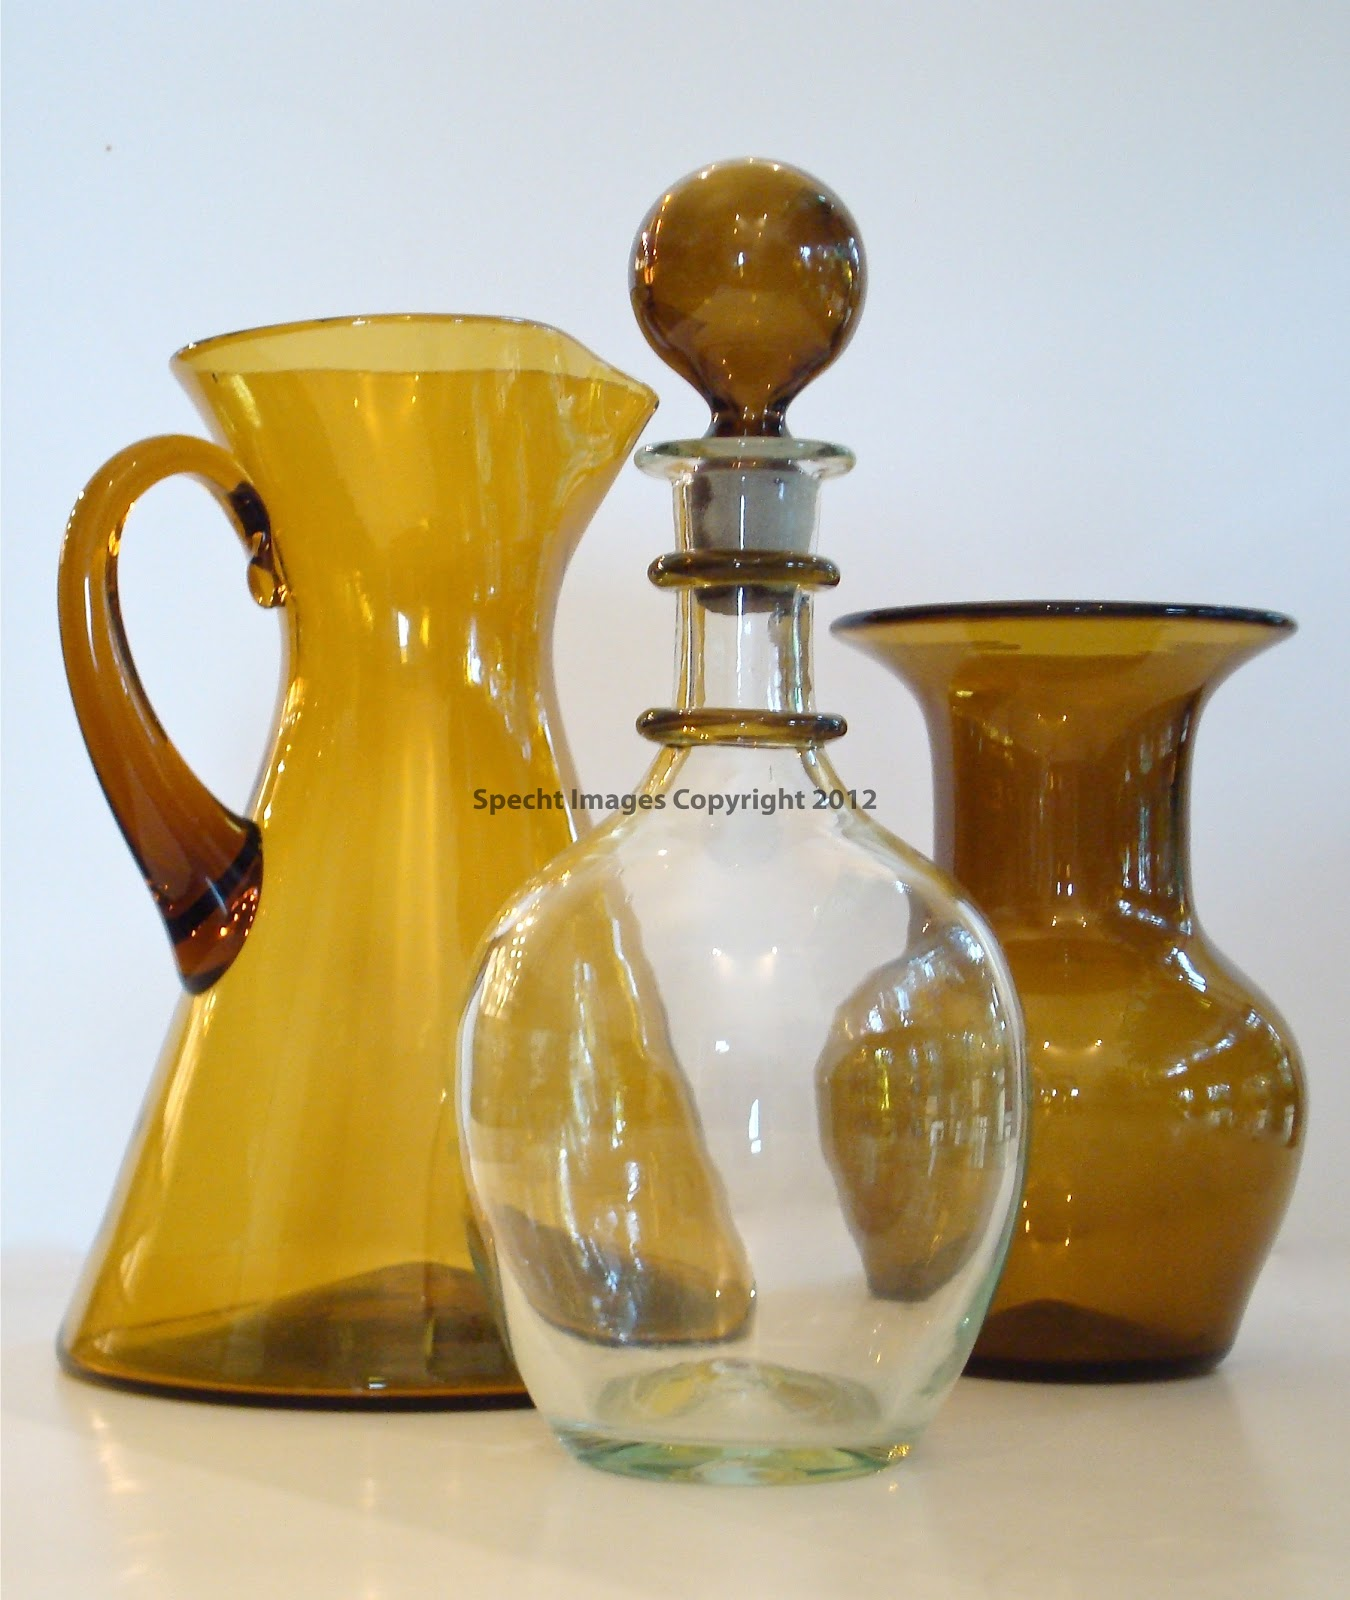 Heart of Gl - Blenko Gl: Pre-designer amber decanter, vase and ... on blenko bubble vase, blenko small vase, blenko handmade vase, blenko hourglass vase, blenko amber vase, blenko blue vase, blenko ruffled vase, blenko clear vase, blenko green vase, blenko 1957 19 1 2 vase, blenko amethyst vase, blenko tangerine vase,